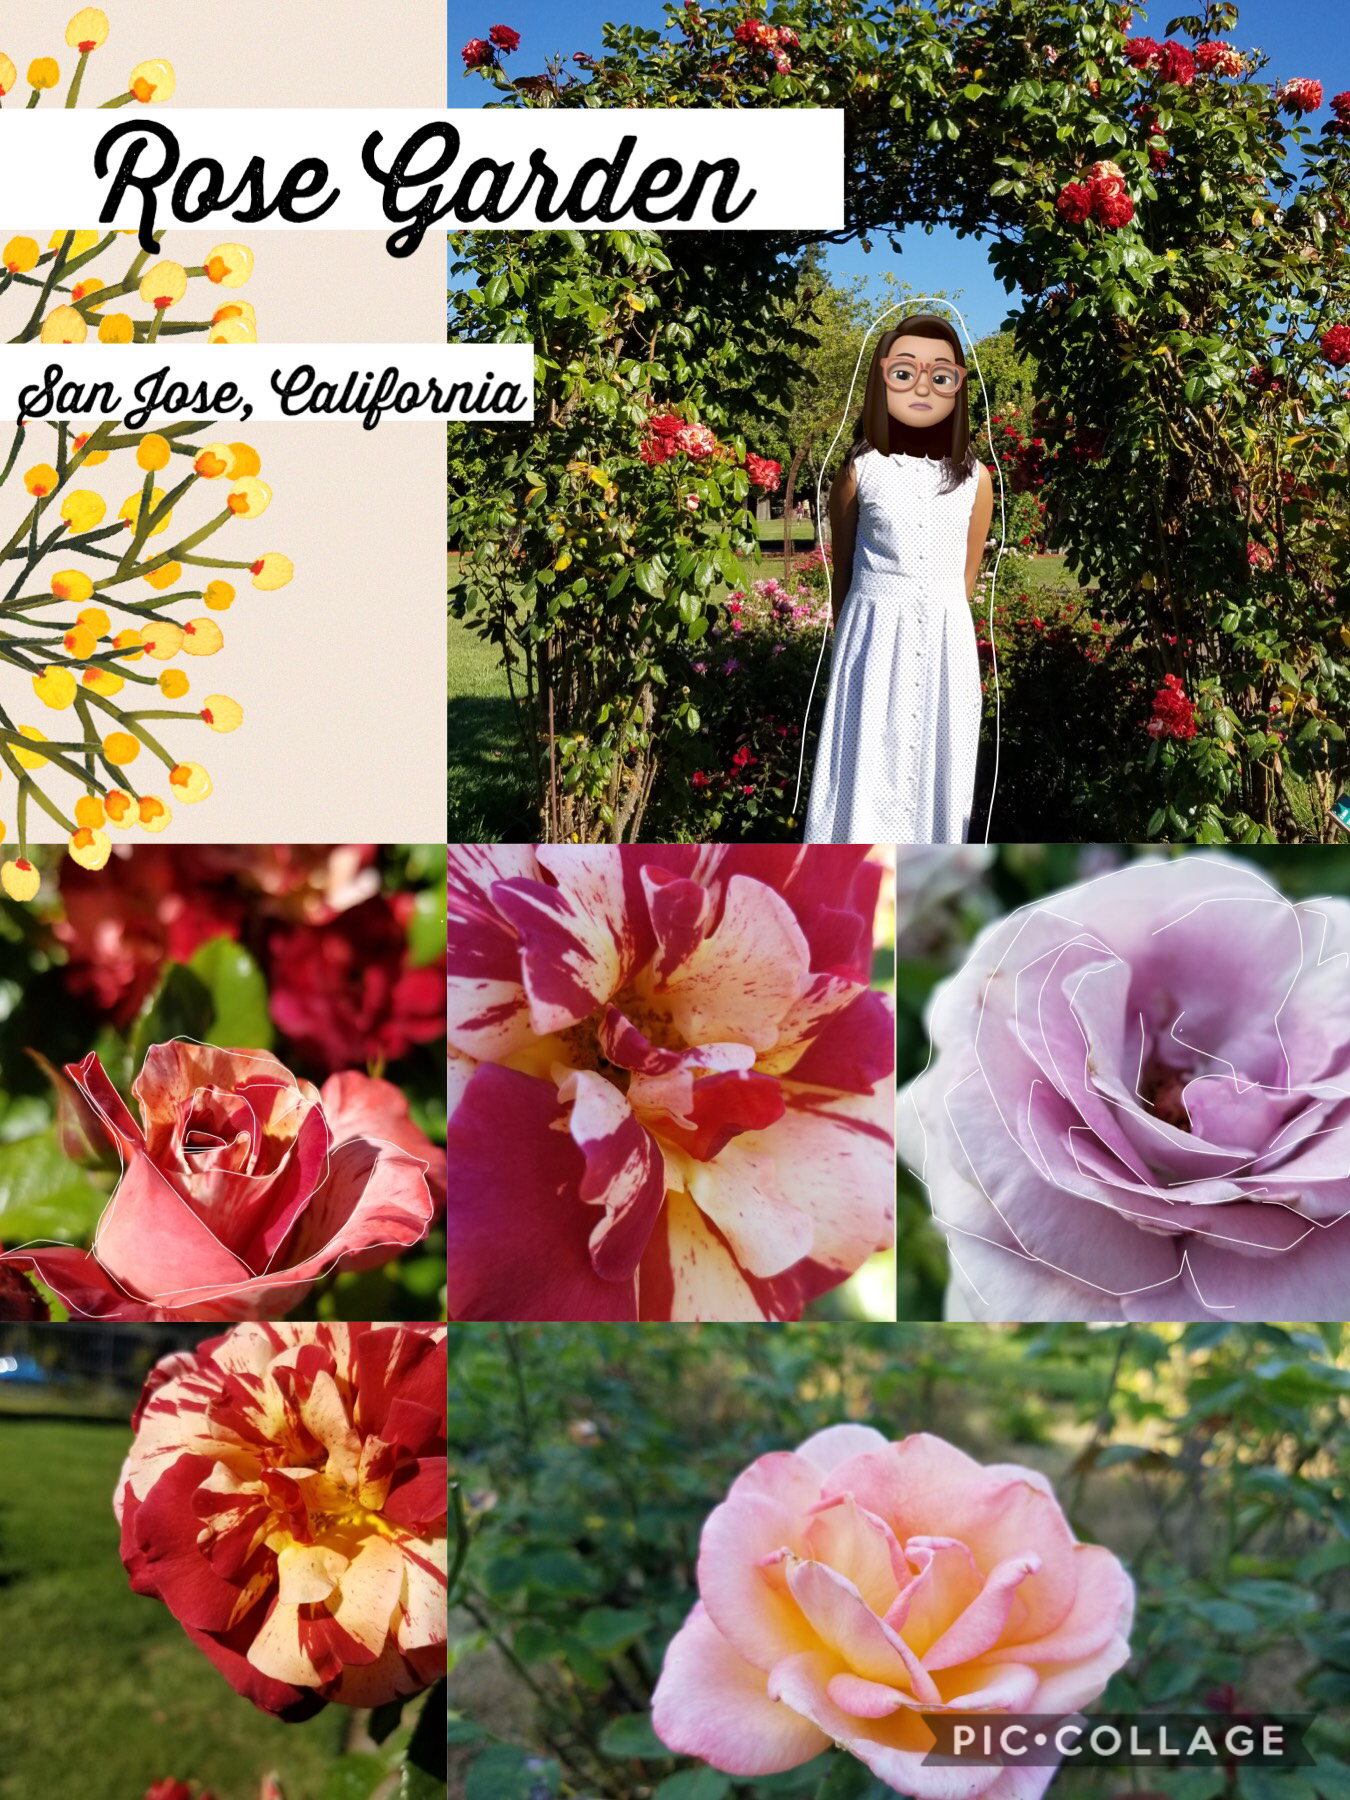 - 🥭 -  Sorry I haven't been posting collages in a while... I was so busy this month 😓 Anywayzzzzzz... this rose garden is sooooo beautiful! Once you walk in, you already SMELL the rose fragrance. There were so many different types of roses~ 🌹🌹🌹